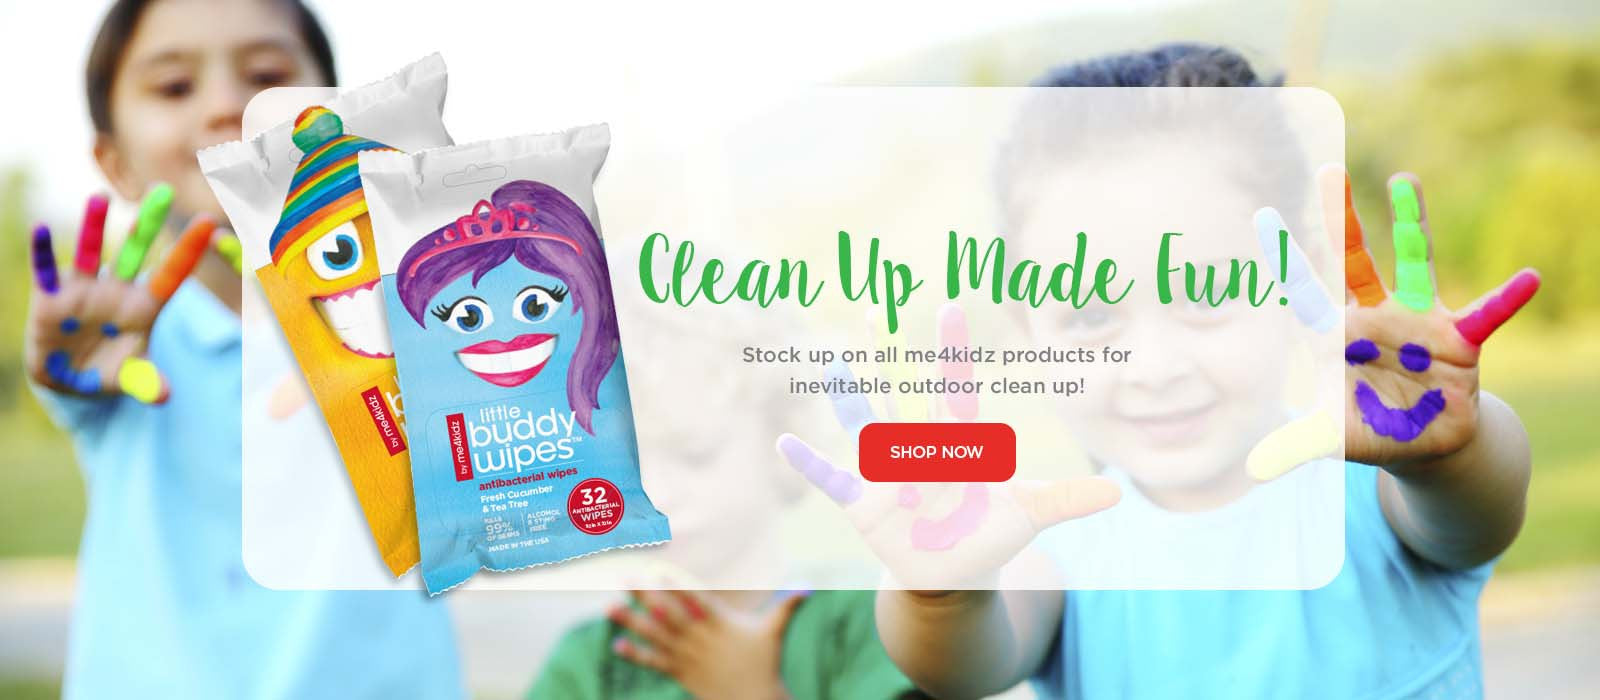 Clean up made fun! - Shop Now